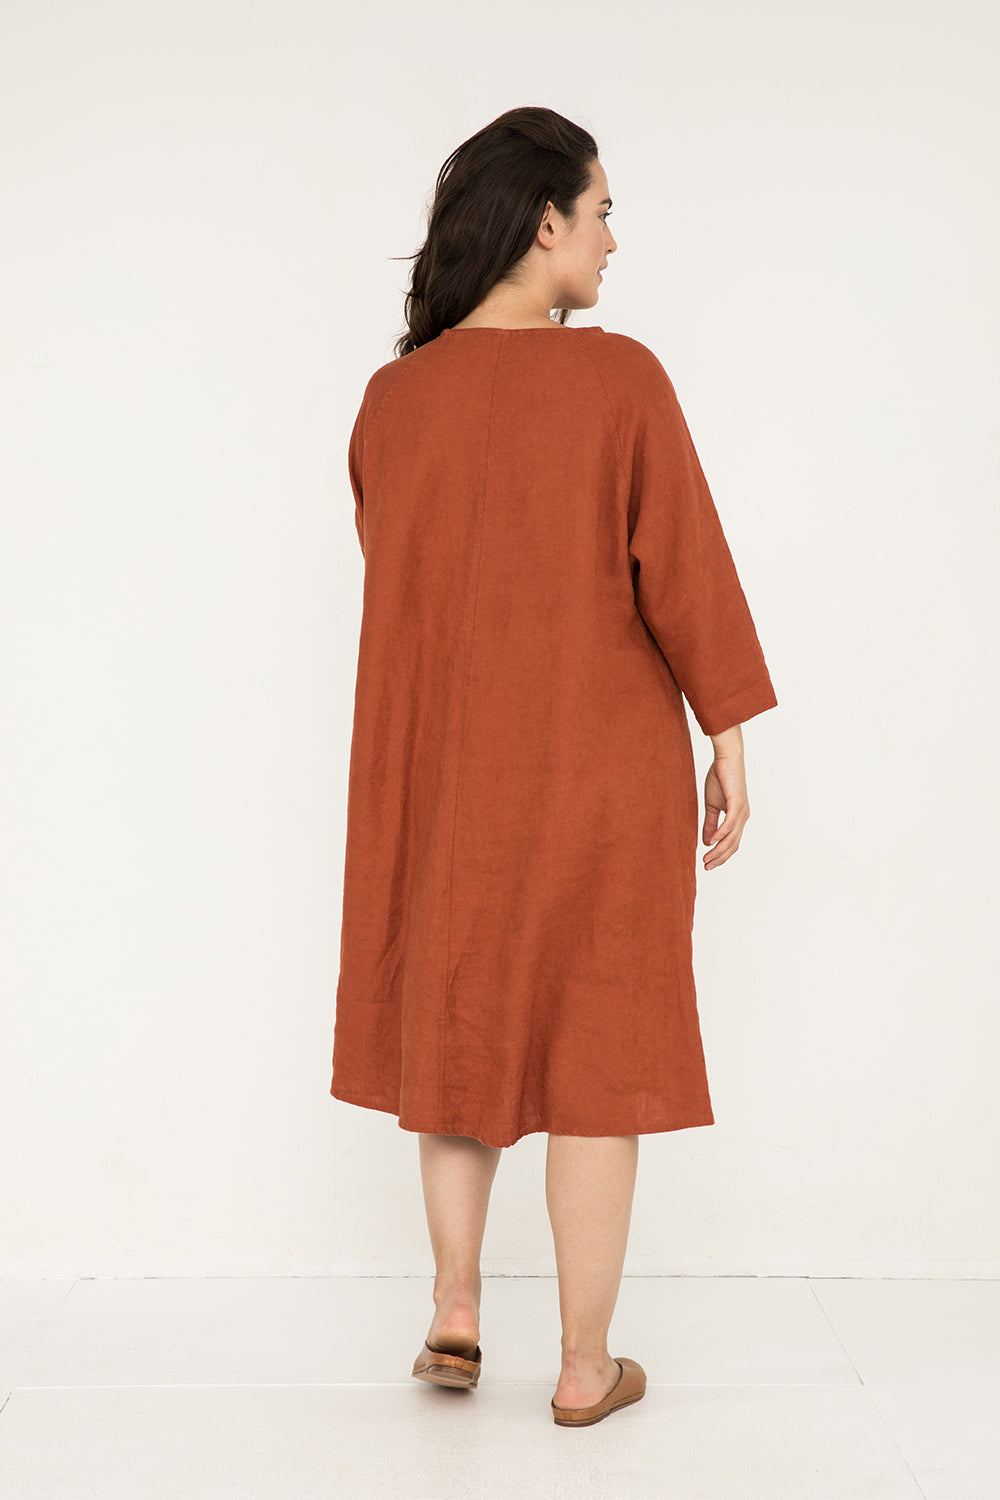 Artist Dress in Midweight Linen Terra - Natalie-OS